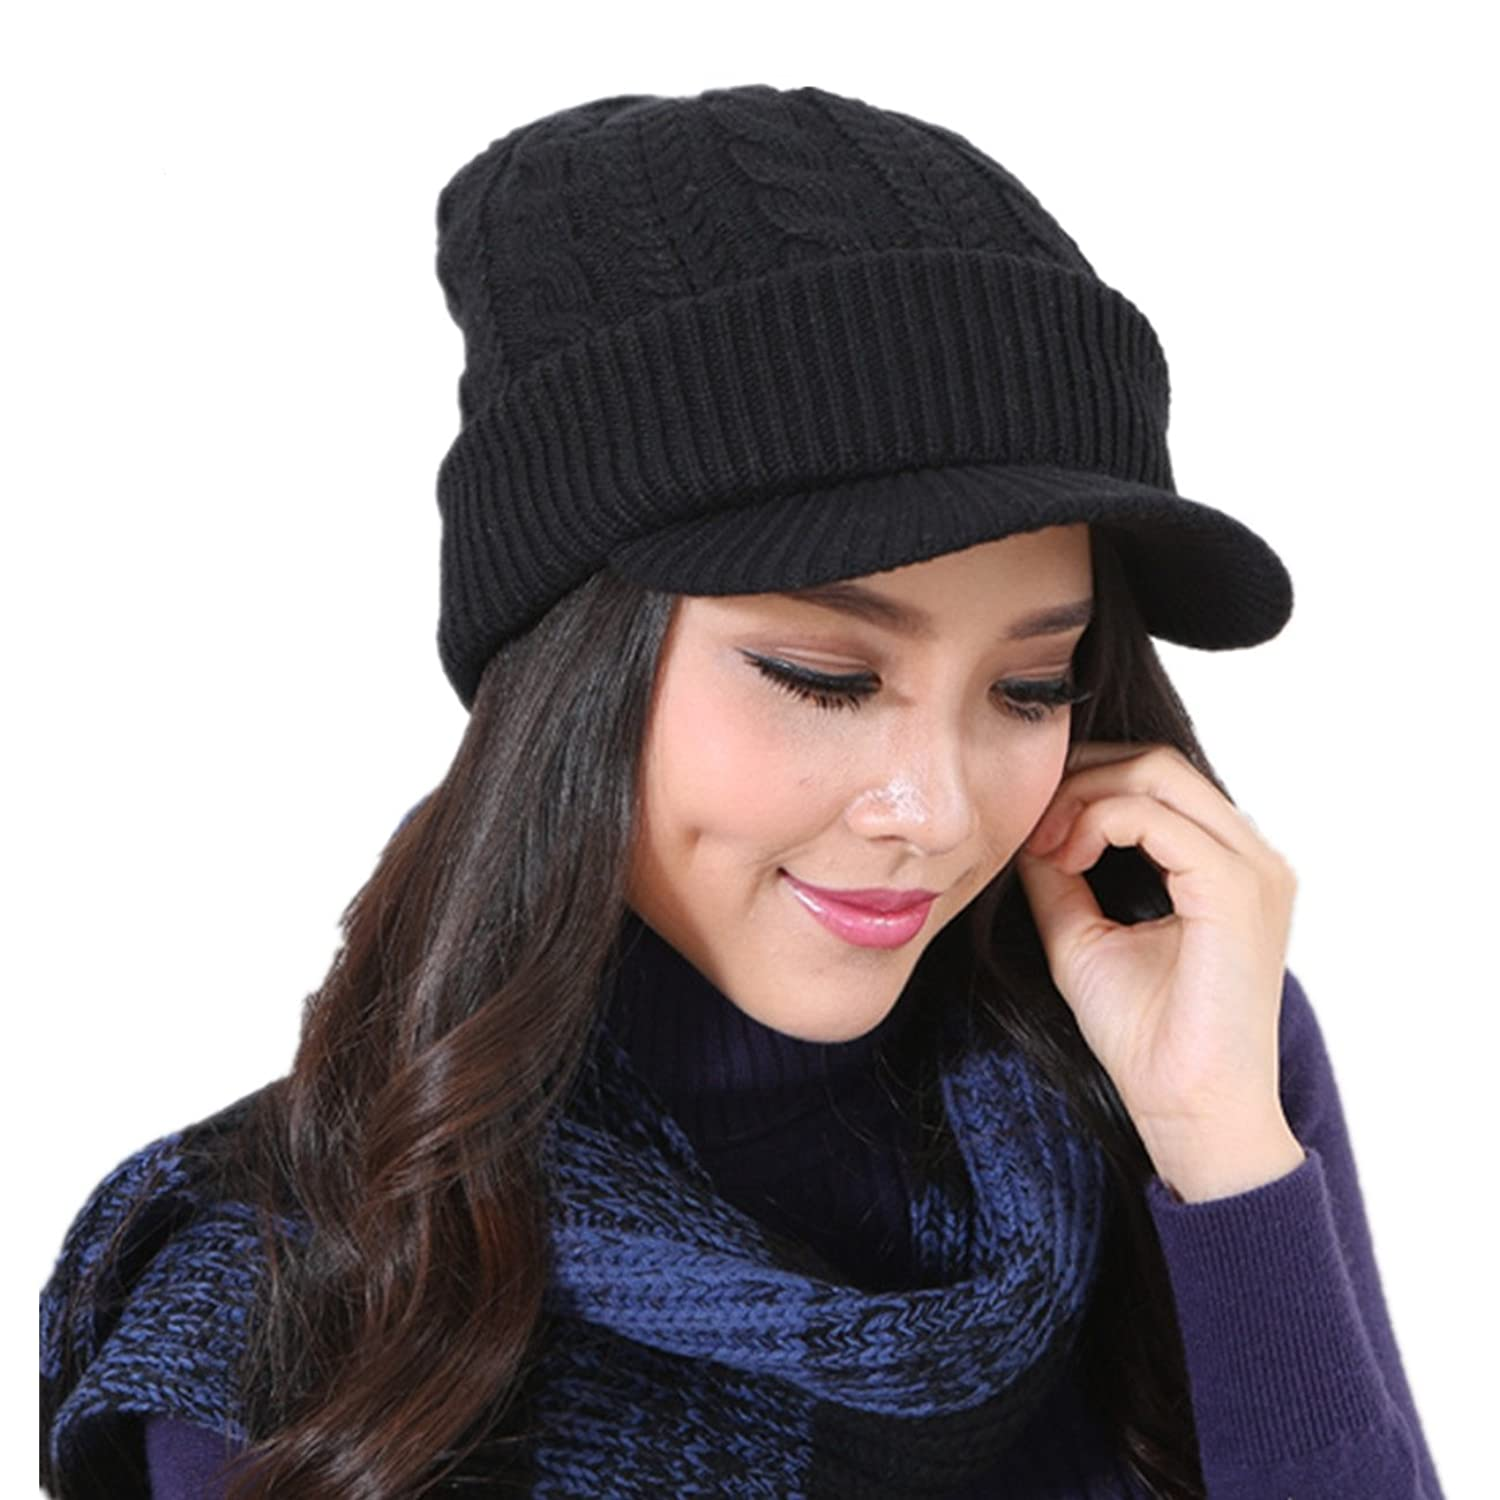 3fc8aa663677ea Connectyle Women 's Warm Bill Winter Hats Slouchy Cable Knitted Beanie Cap  with Visor Newsboy Cap Black, 55 60cm at Amazon Women's Clothing store: